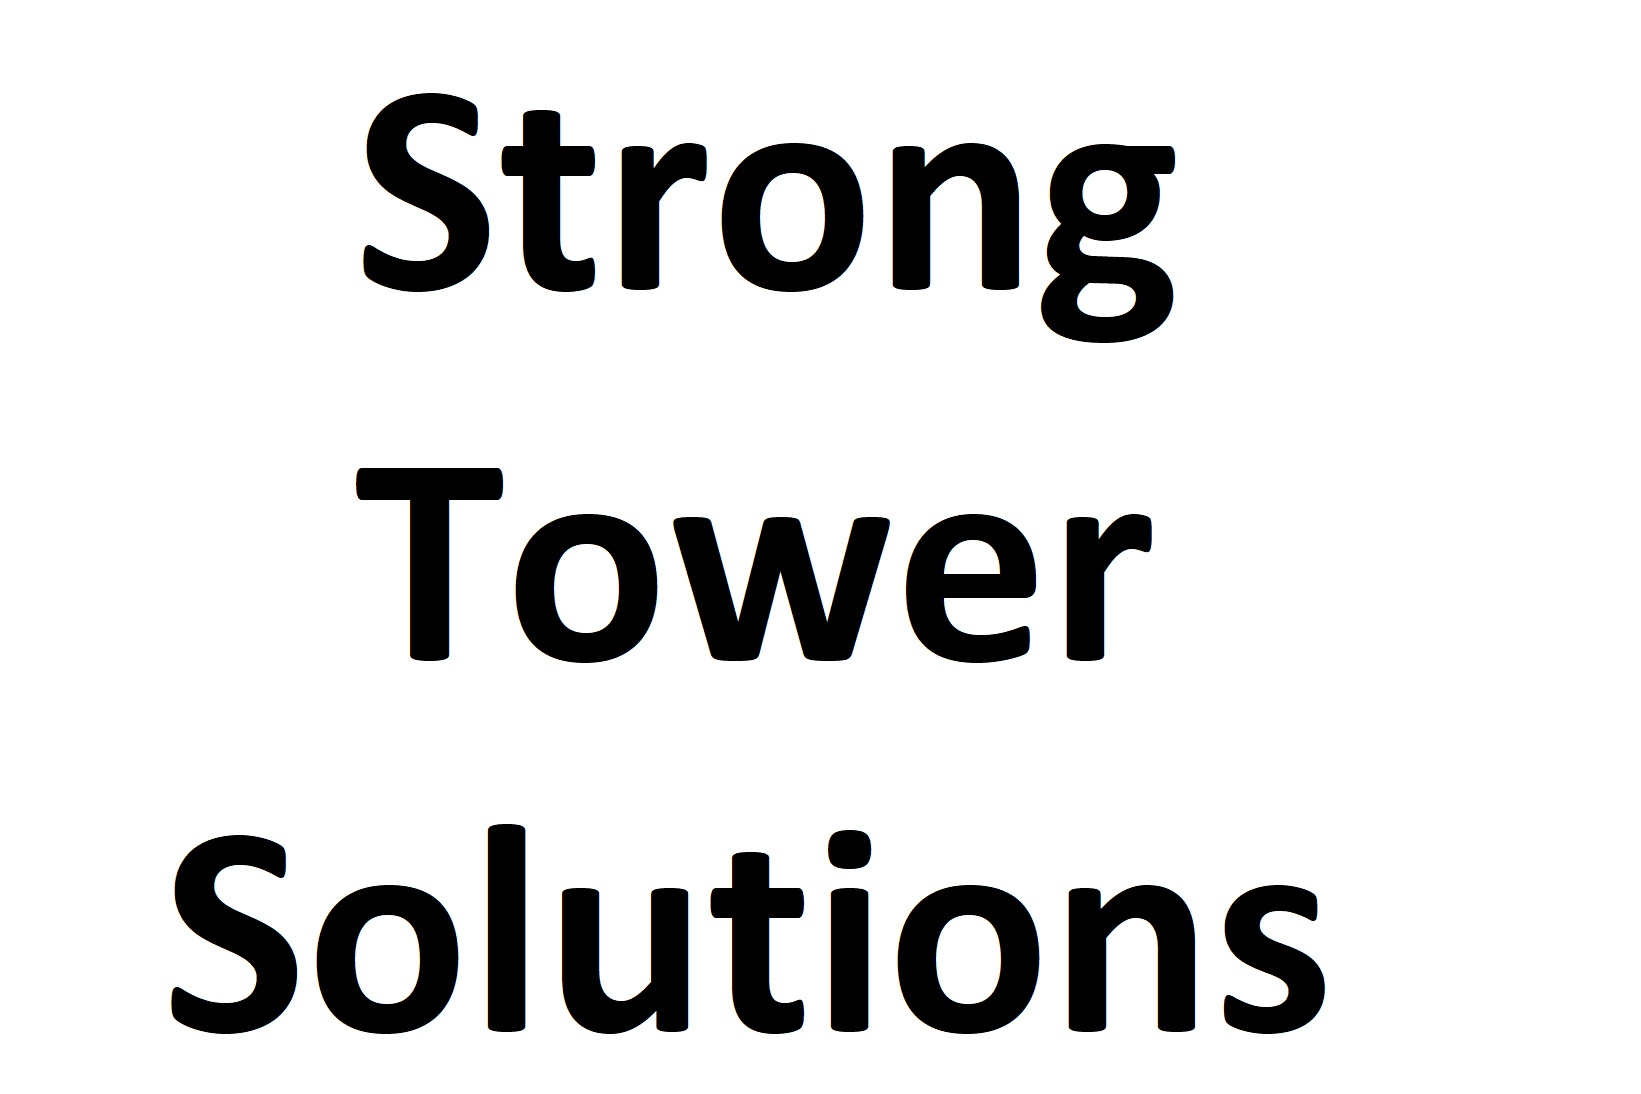 Strong Tower Solutions